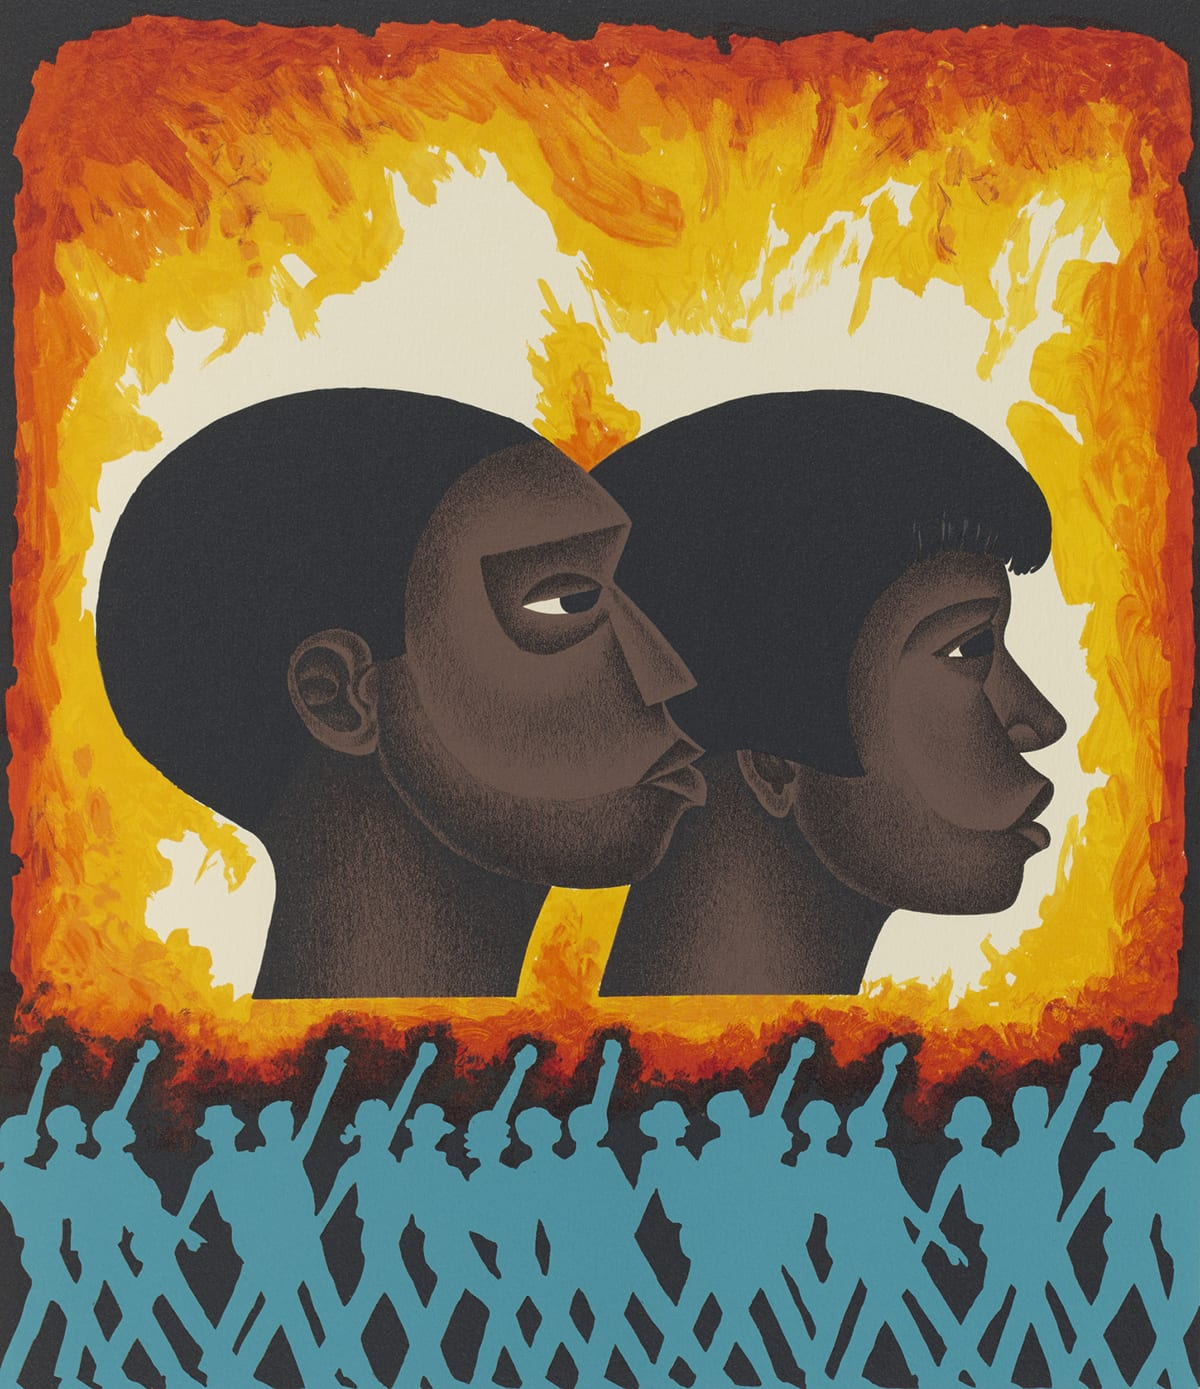 A vertical rectangular book page with an image of the profiles of two heads in the center. The individuals appear to be male presenting and female presenting. Both figures face right, have dark brown skin, black hair, and flat, stylized features. The male-presenting individual has a close cap of hair, the female presenting figure's hair has longer sides and bangs. Facial features are delineated by sharp, crisp shading around the nose, eyes, mouth, jaw and neck. Their expressions are neutral. Surrounding the heads and over a black background, uneven brushstrokes in bright orange blending to yellow and finally what appears to be the white paper, give the overall suggestion of fire and flames around the two heads. At the bottom edge of the page running from side to side and about one quarter the way up, is a row of silhouetted figures in blue over a black background. They appear to be marching, some with fists raised that almost touch the red and orange flames depicted above them. Their legs cross each other creating an X pattern. Each individual seems to be unique, some with hats or hairstyles evident. The stitching from the binding of the book can be seen at right, running from top to bottom along the extreme left edge. The central image is surrounded by a wide cream border.